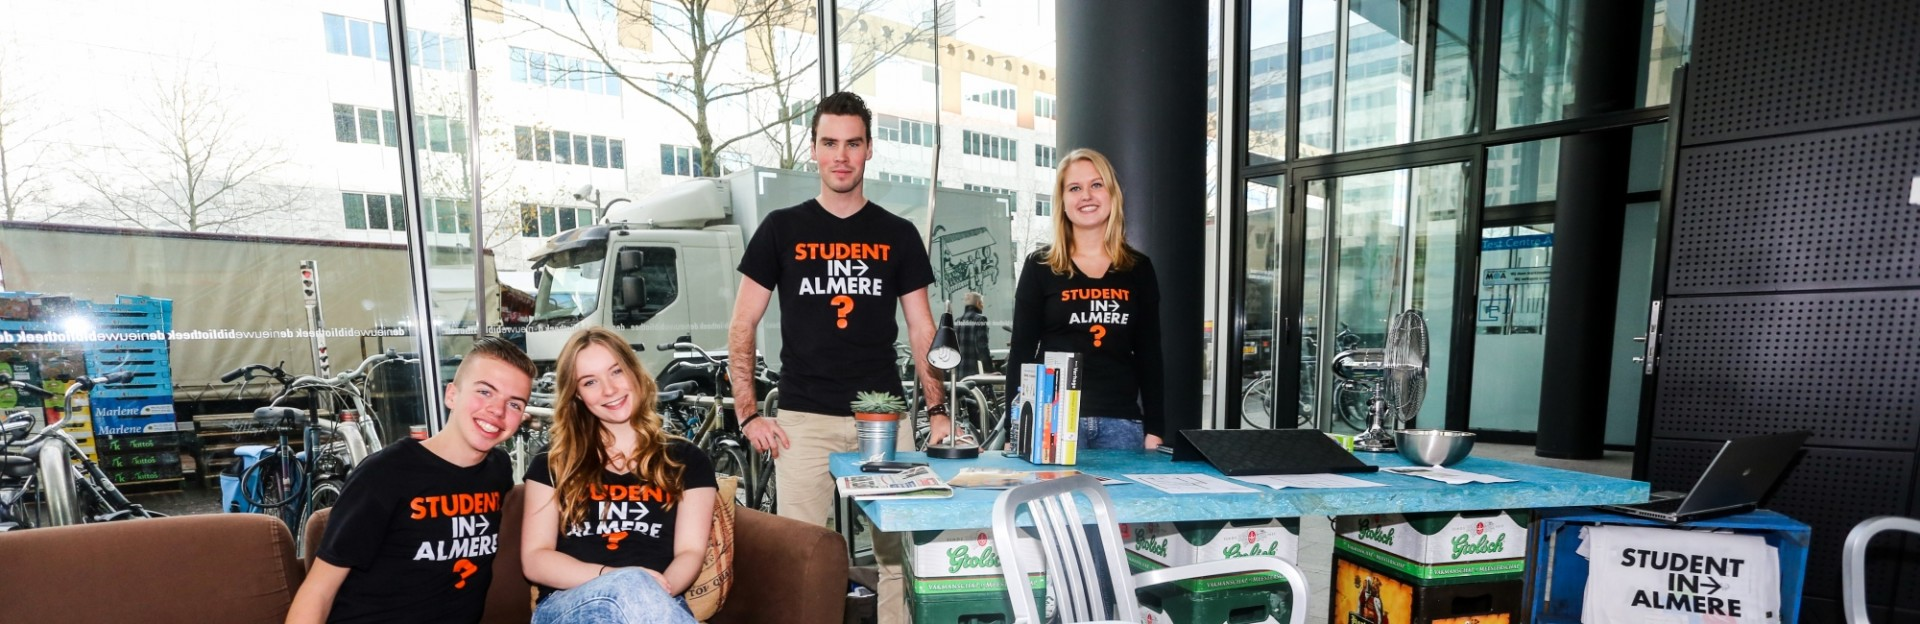 student-in-almere-city-marketing-header